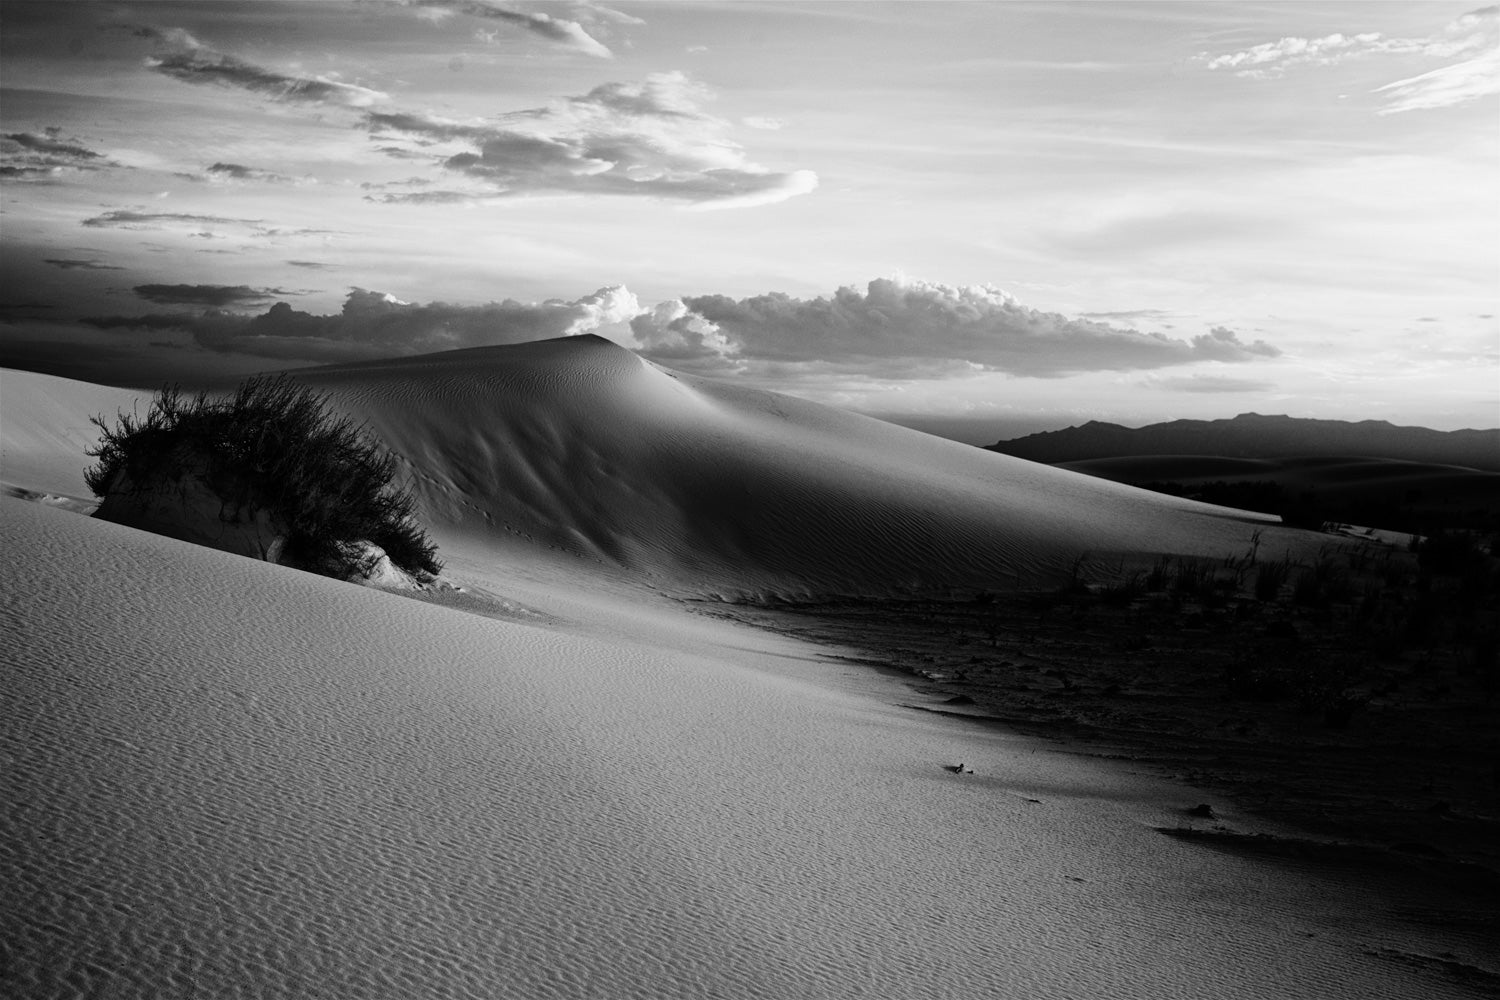 Dunes at White Sands